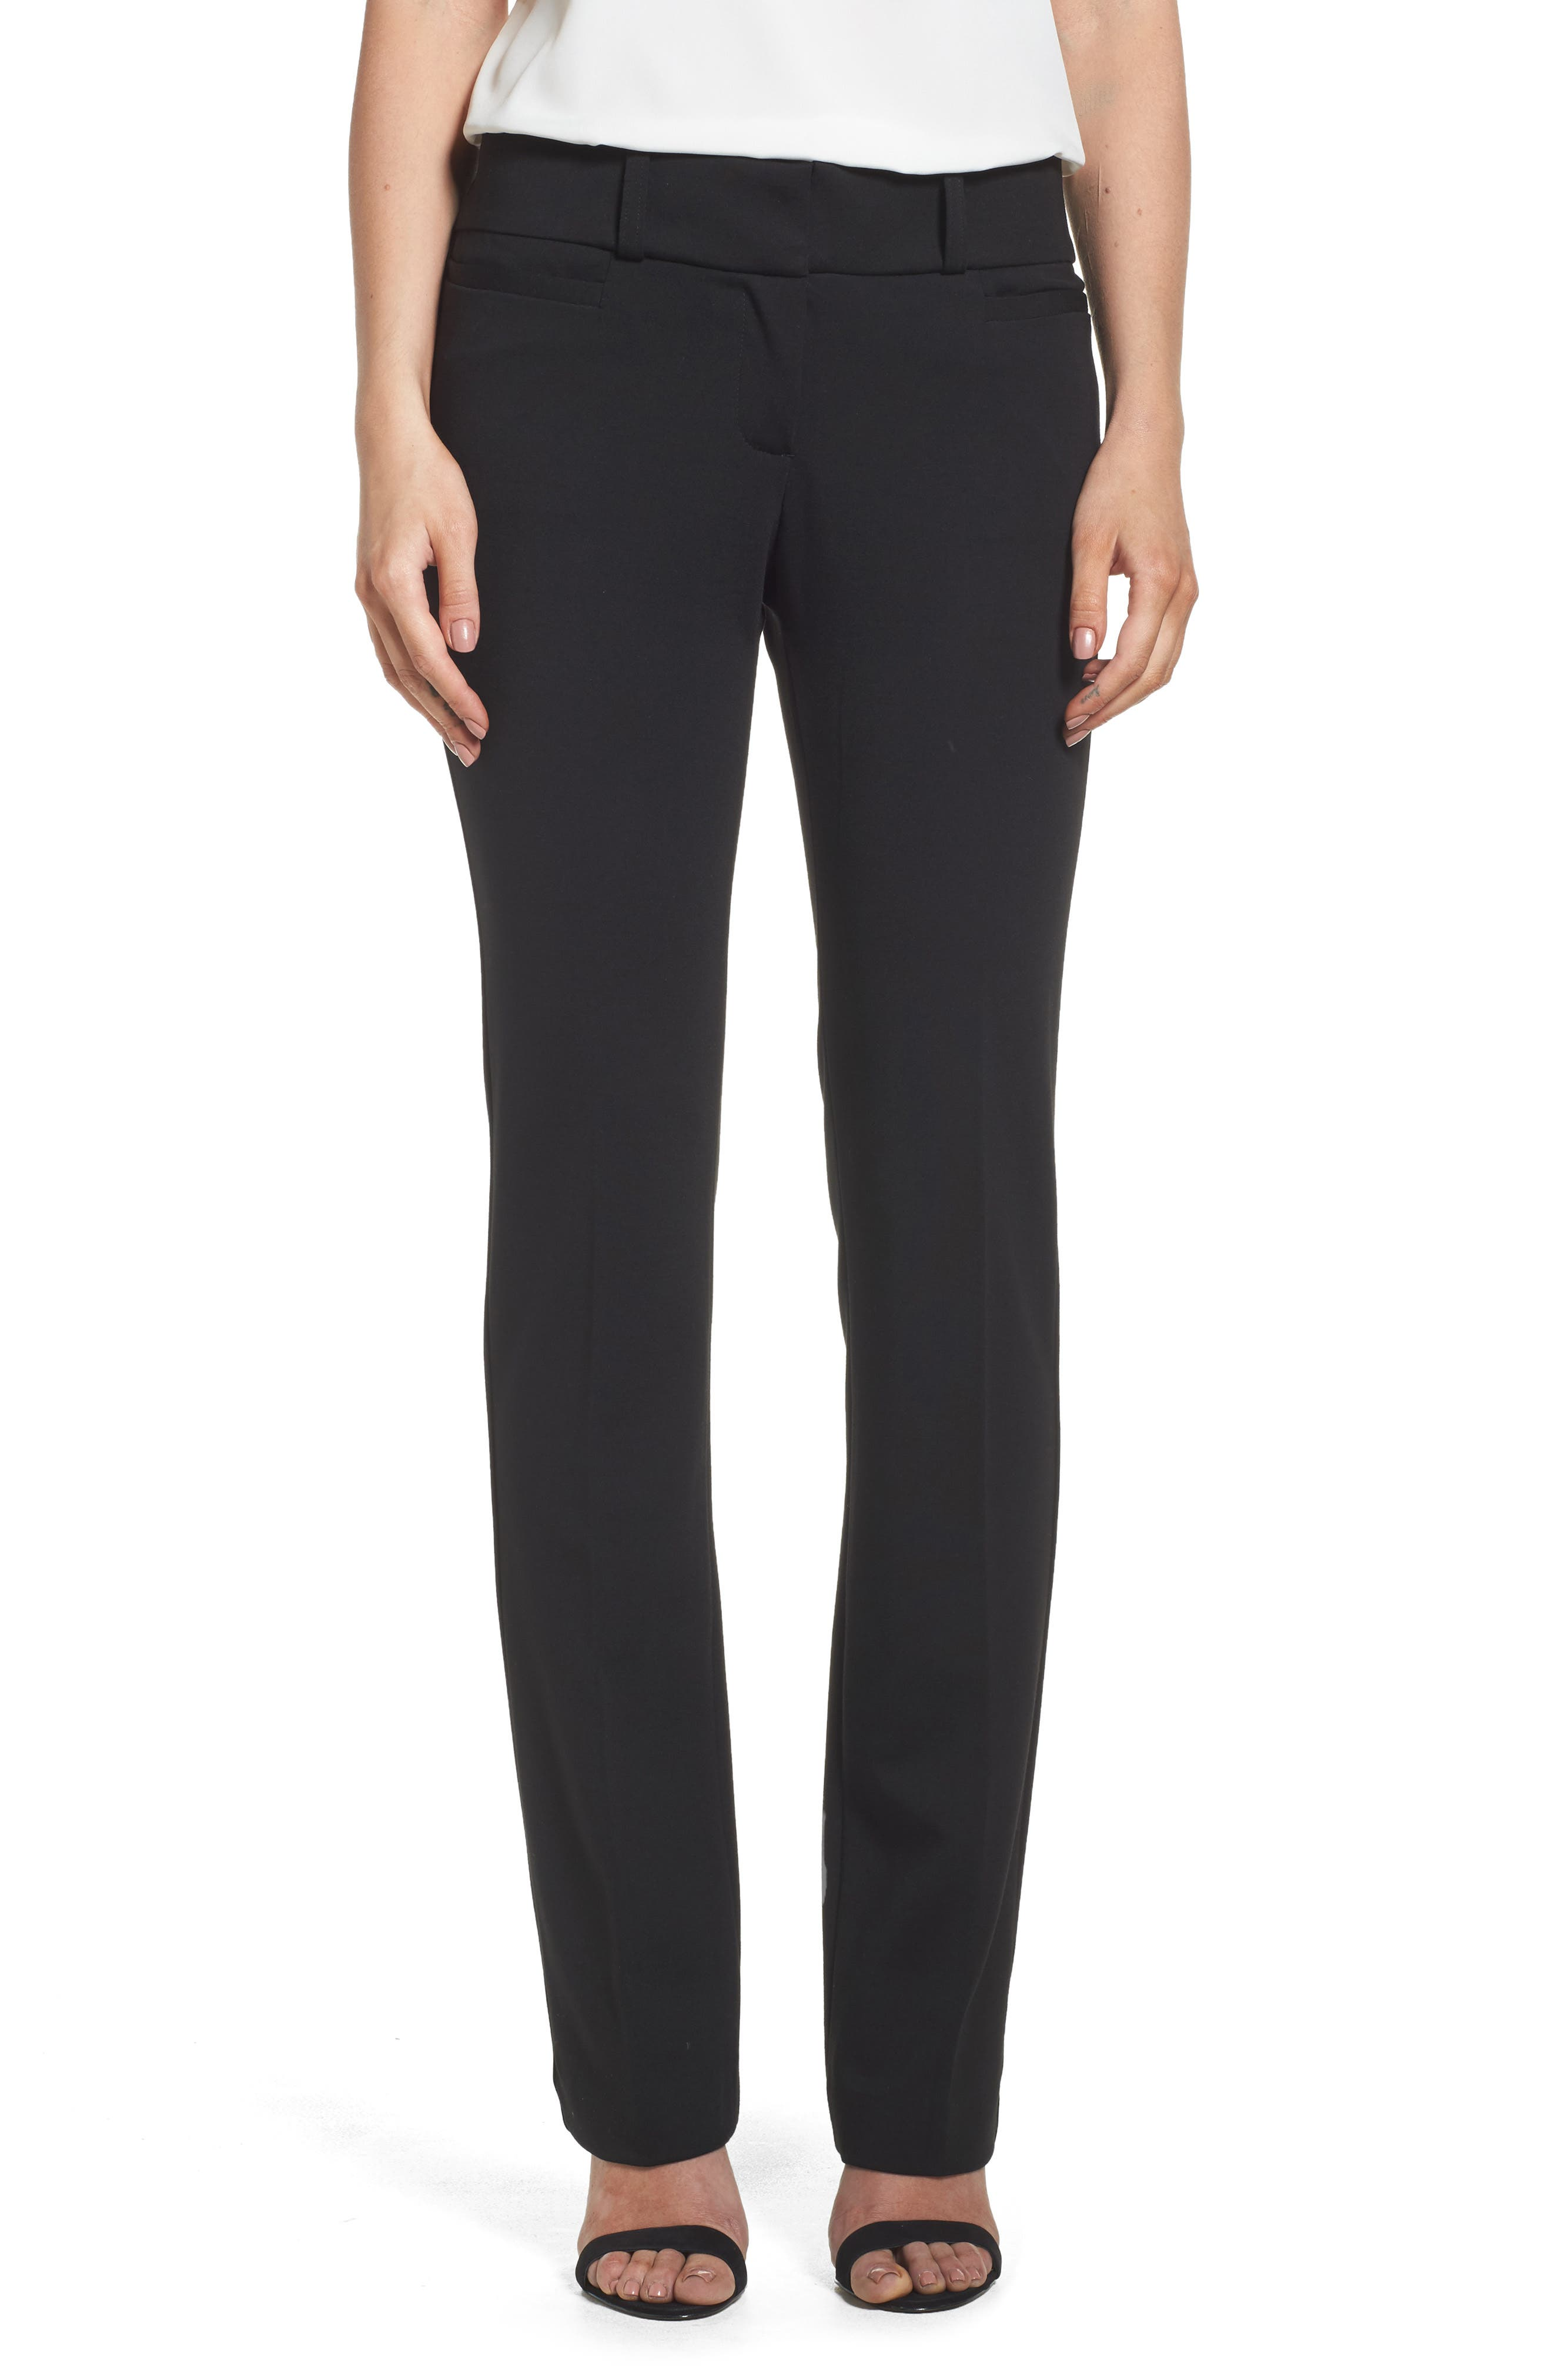 Alternate Image 1 Selected - Sentimental NY Jane Brown Trousers